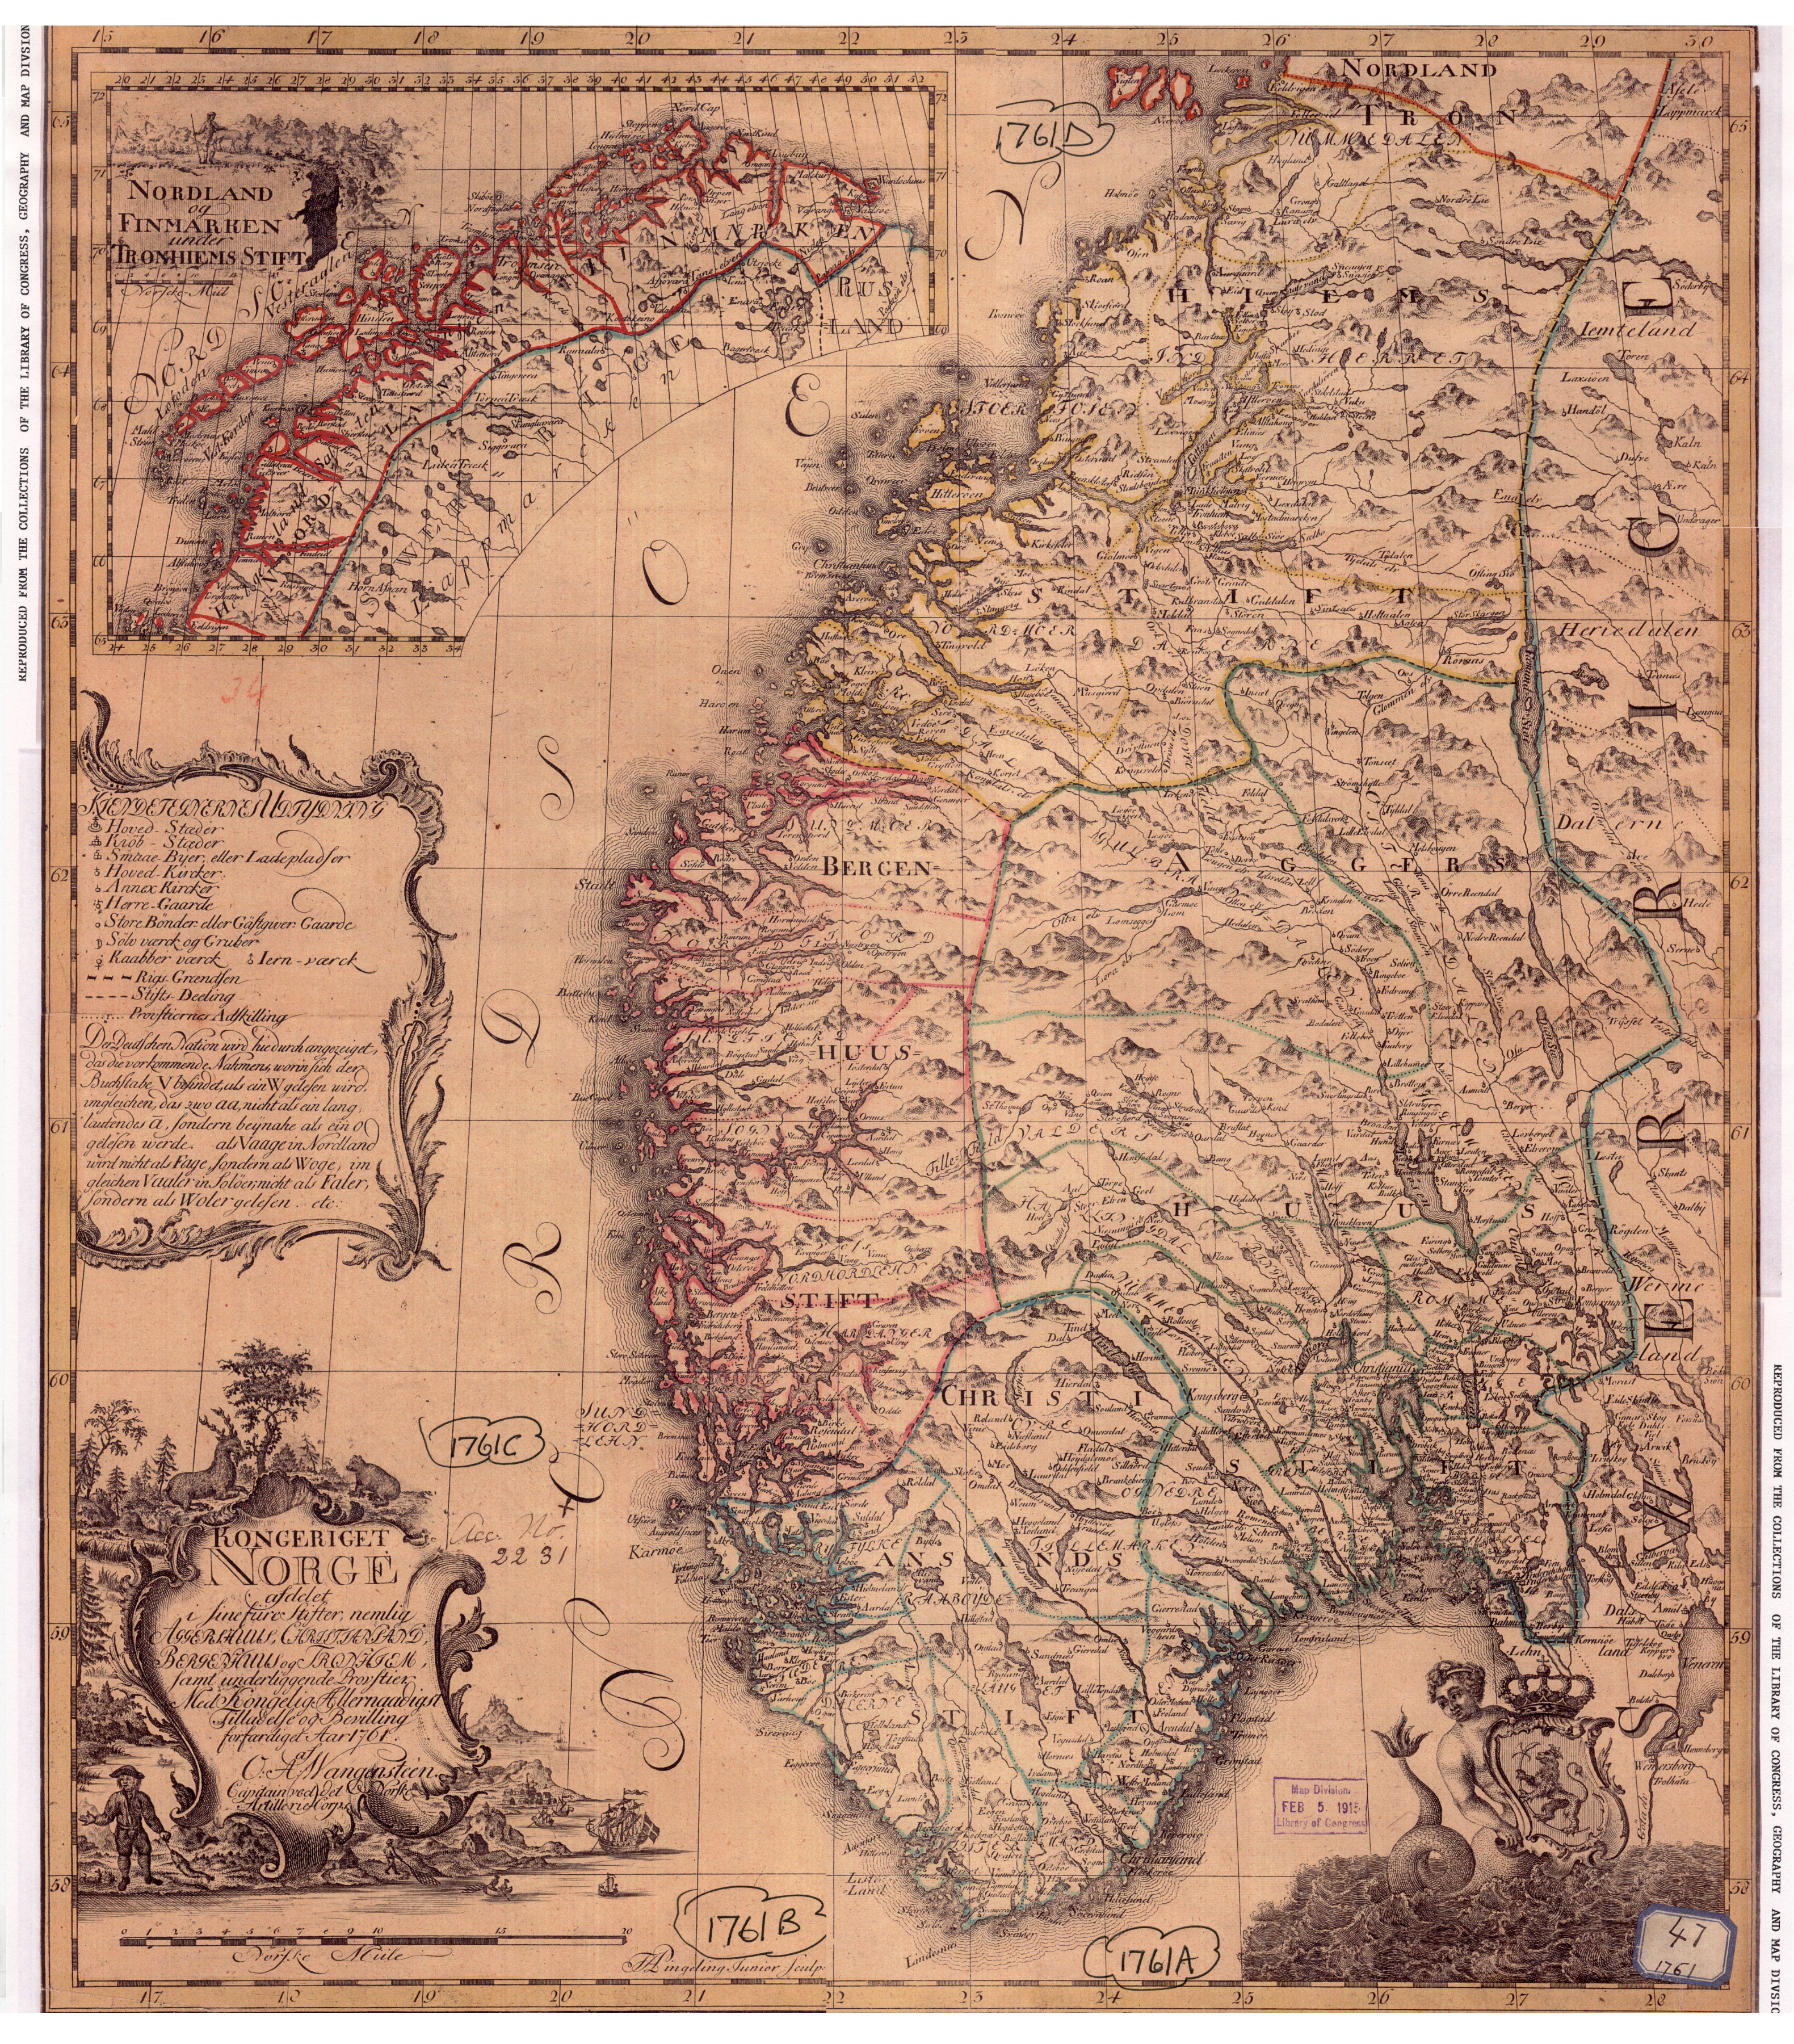 a history of norway The year 1814 is an important year in norwegian history norway drafted its own  constitution on 17 may of that year several wars were being waged in europe.